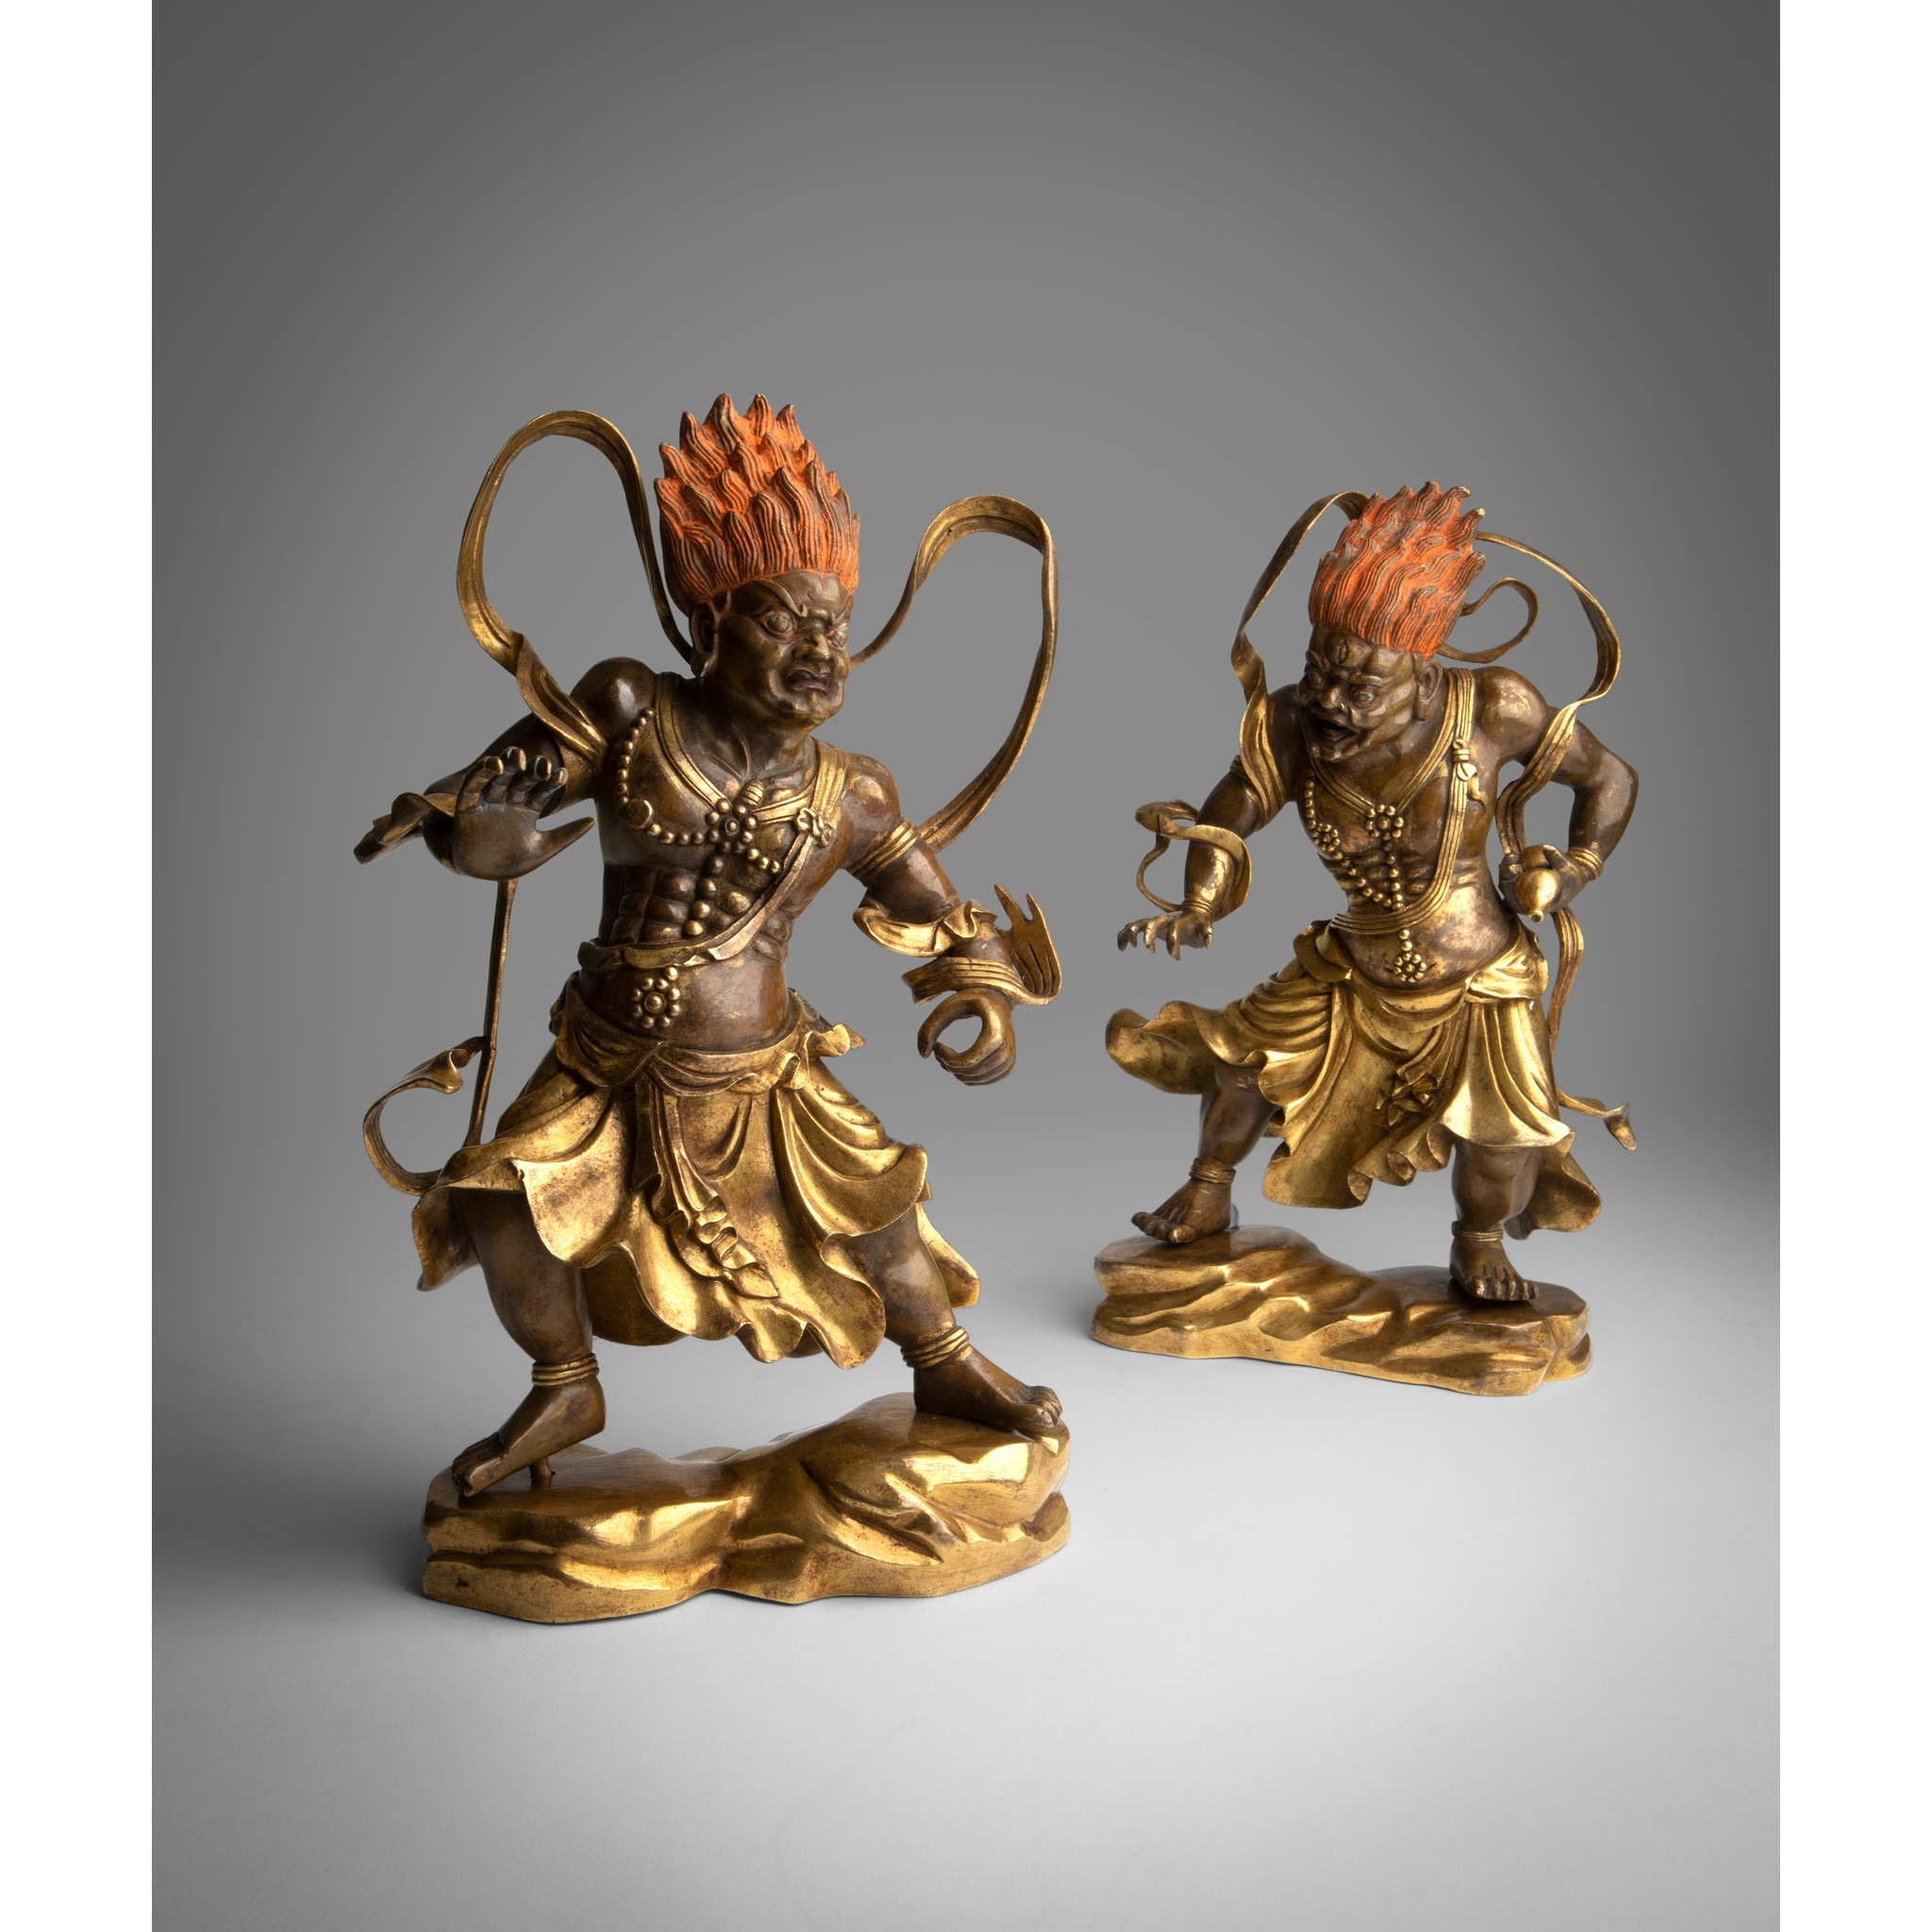 PAIR OF GILT BRONZE FIGURE OF TEMPLE GUARDIANS | QING DYNASTY, 18TH CENTURY, Provenance: private German collection, 23cm high each; 26cm high with stand